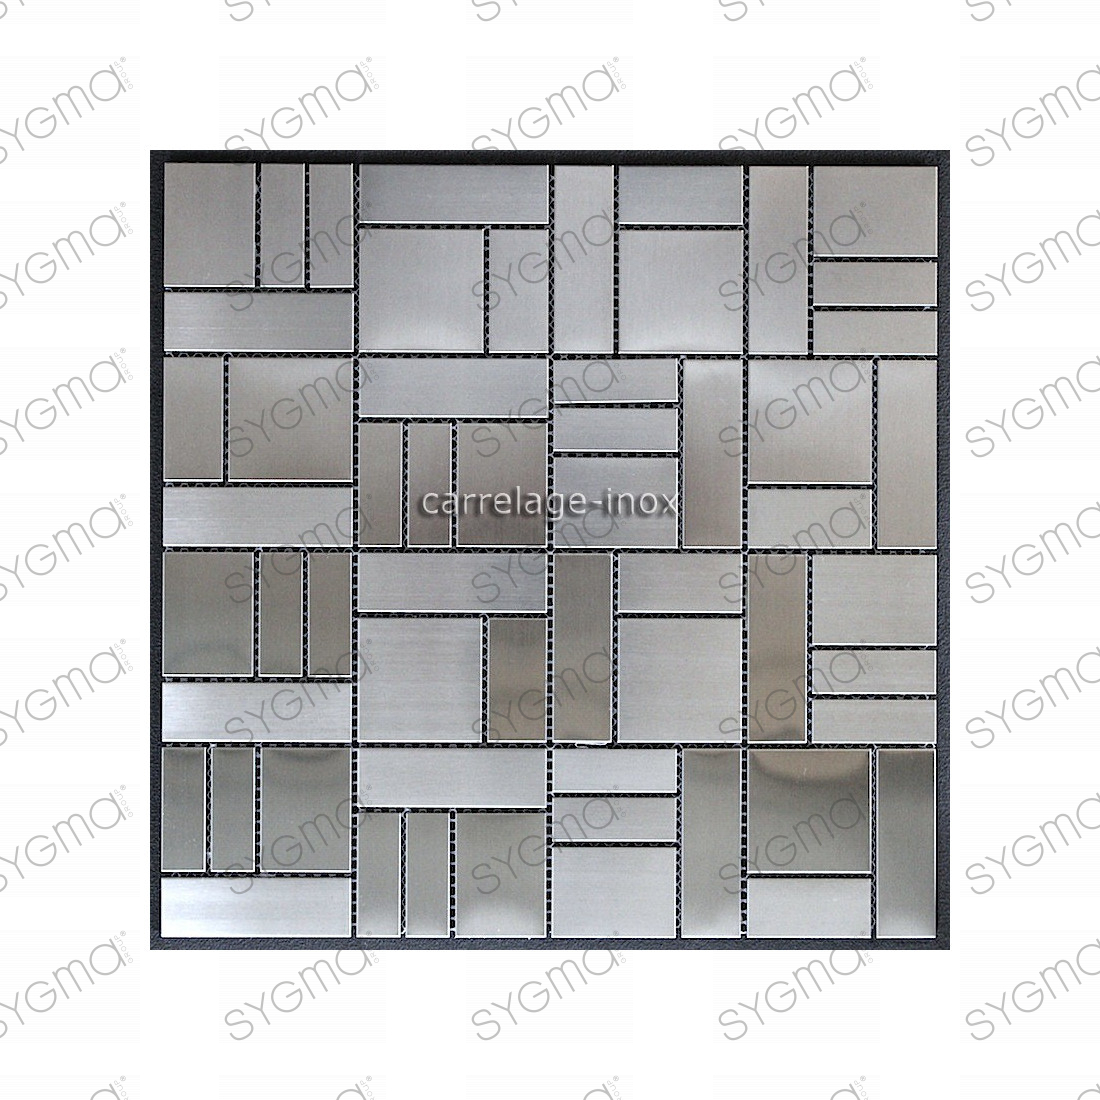 Mosaique inox carrelage faience credence loft for Modele credence en faience